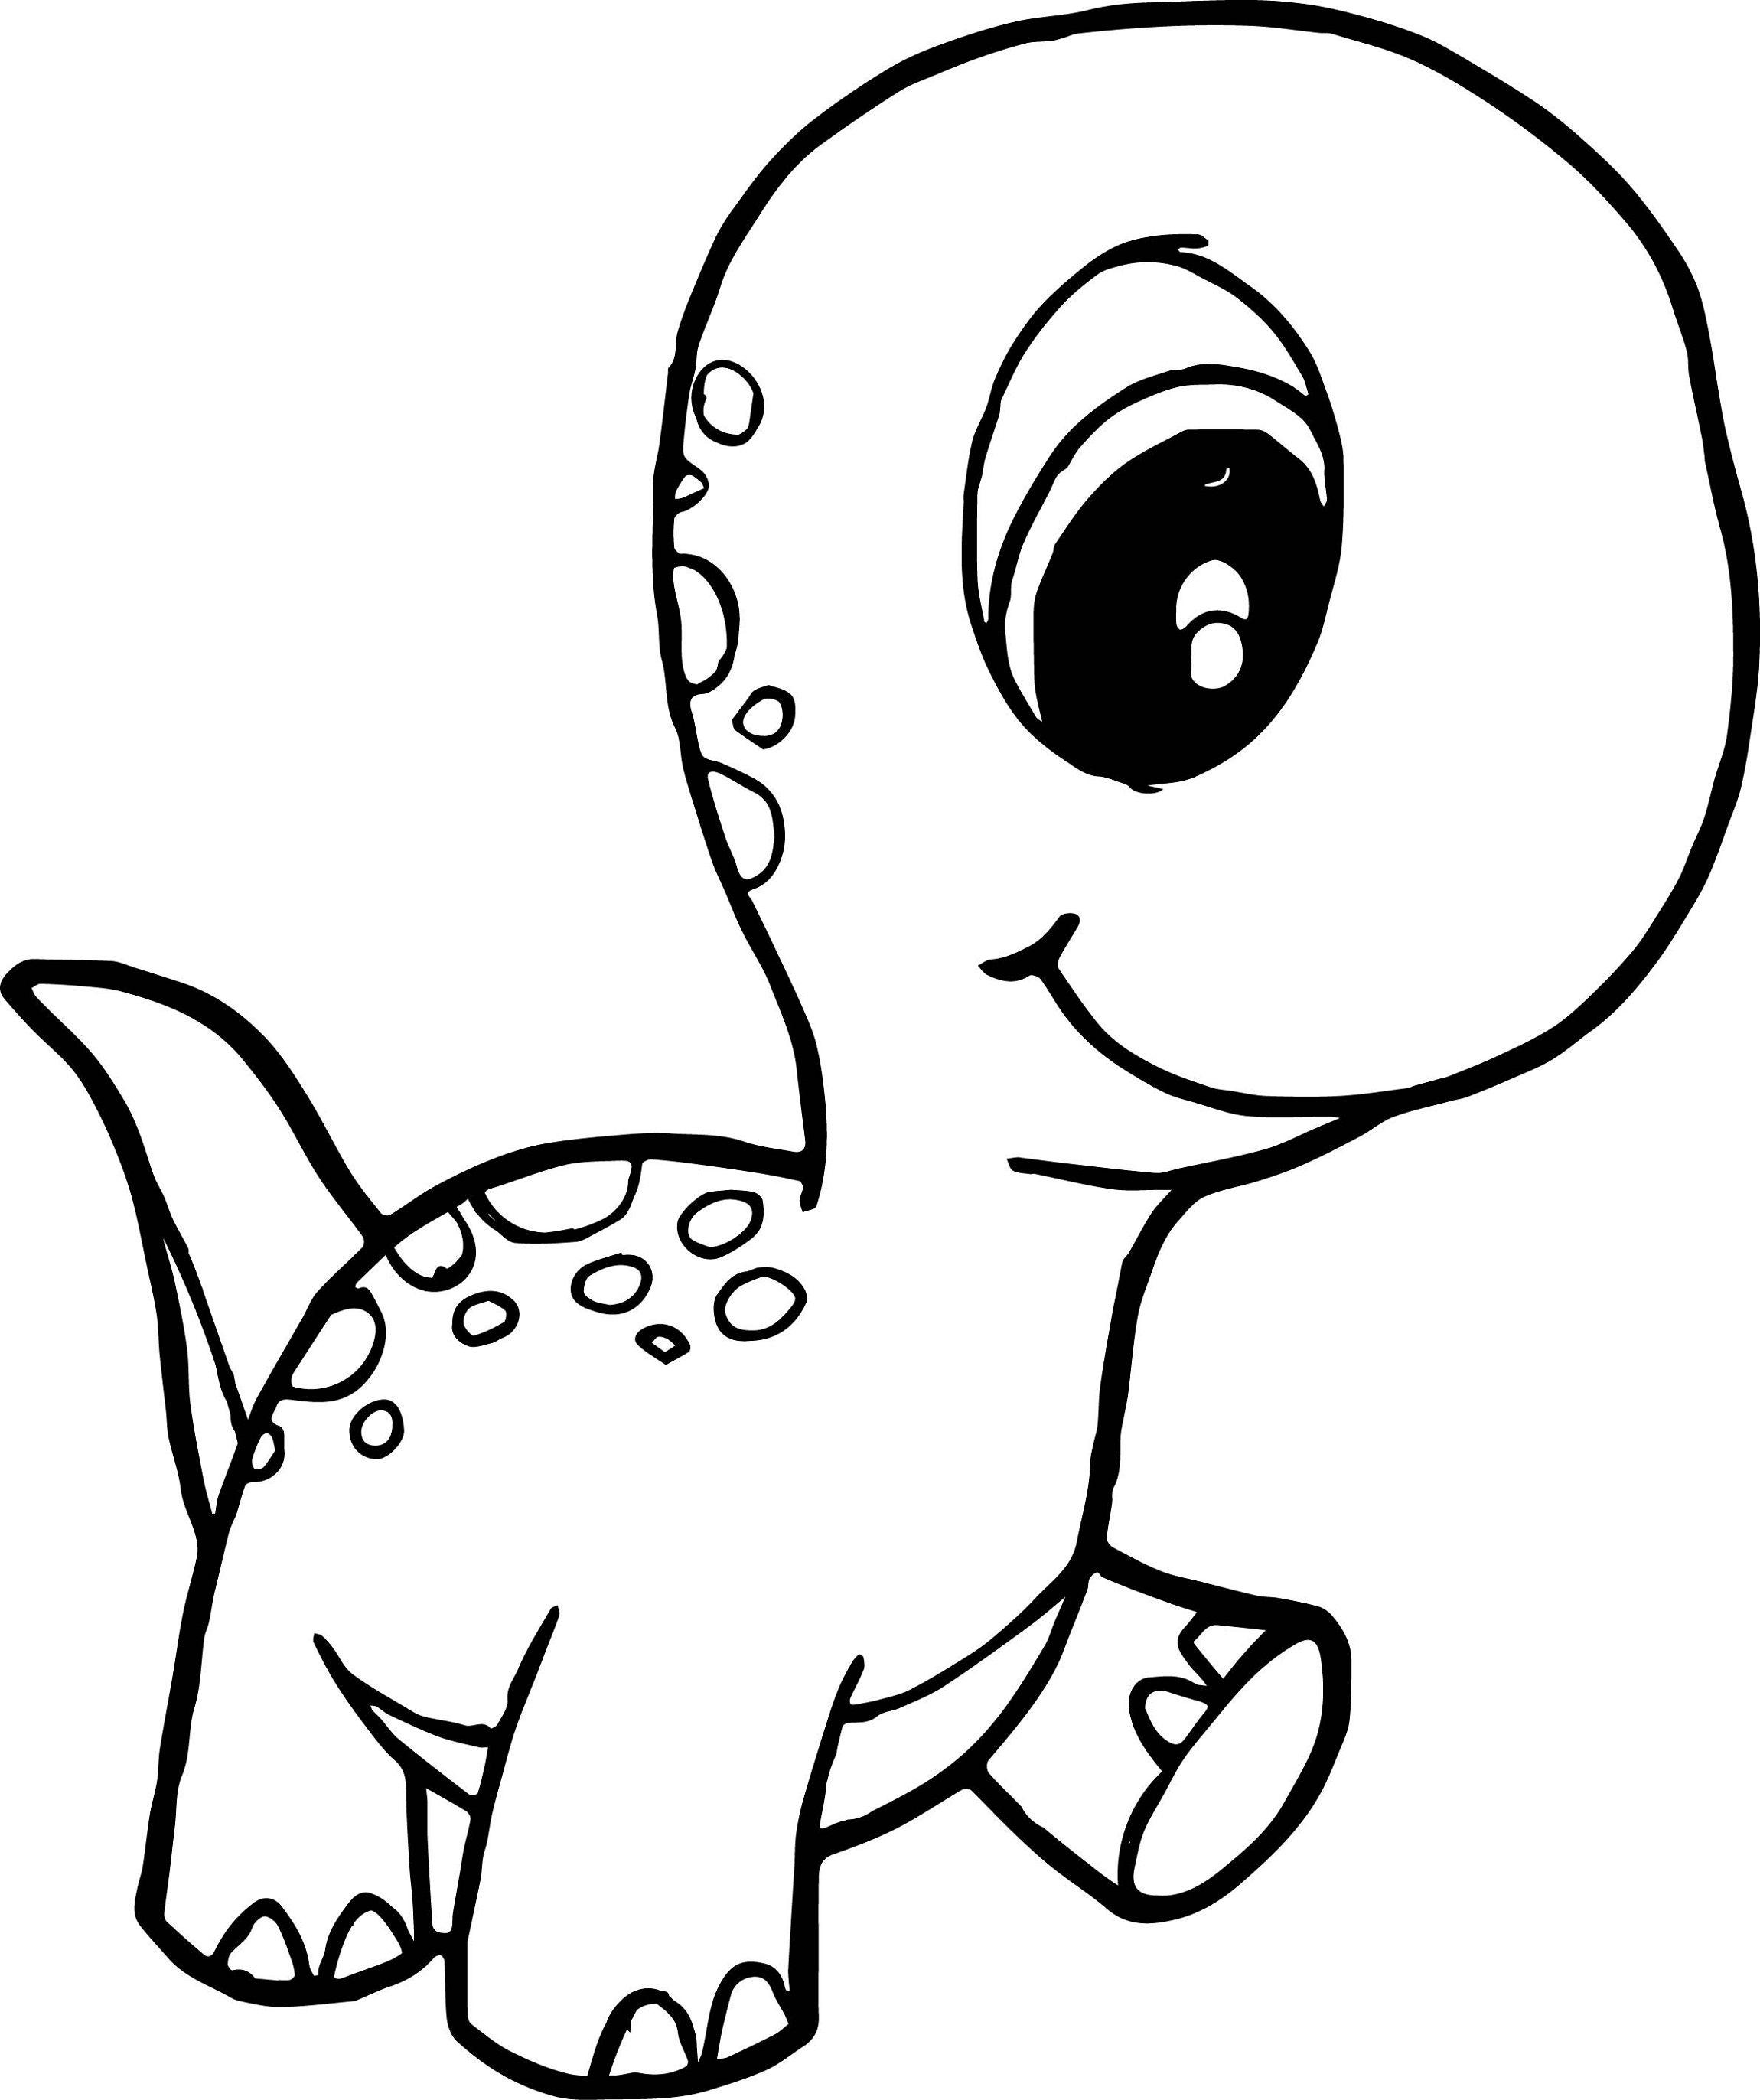 dinosaurs pictures to color dinosaurs coloring pages download and print dinosaurs pictures dinosaurs to color